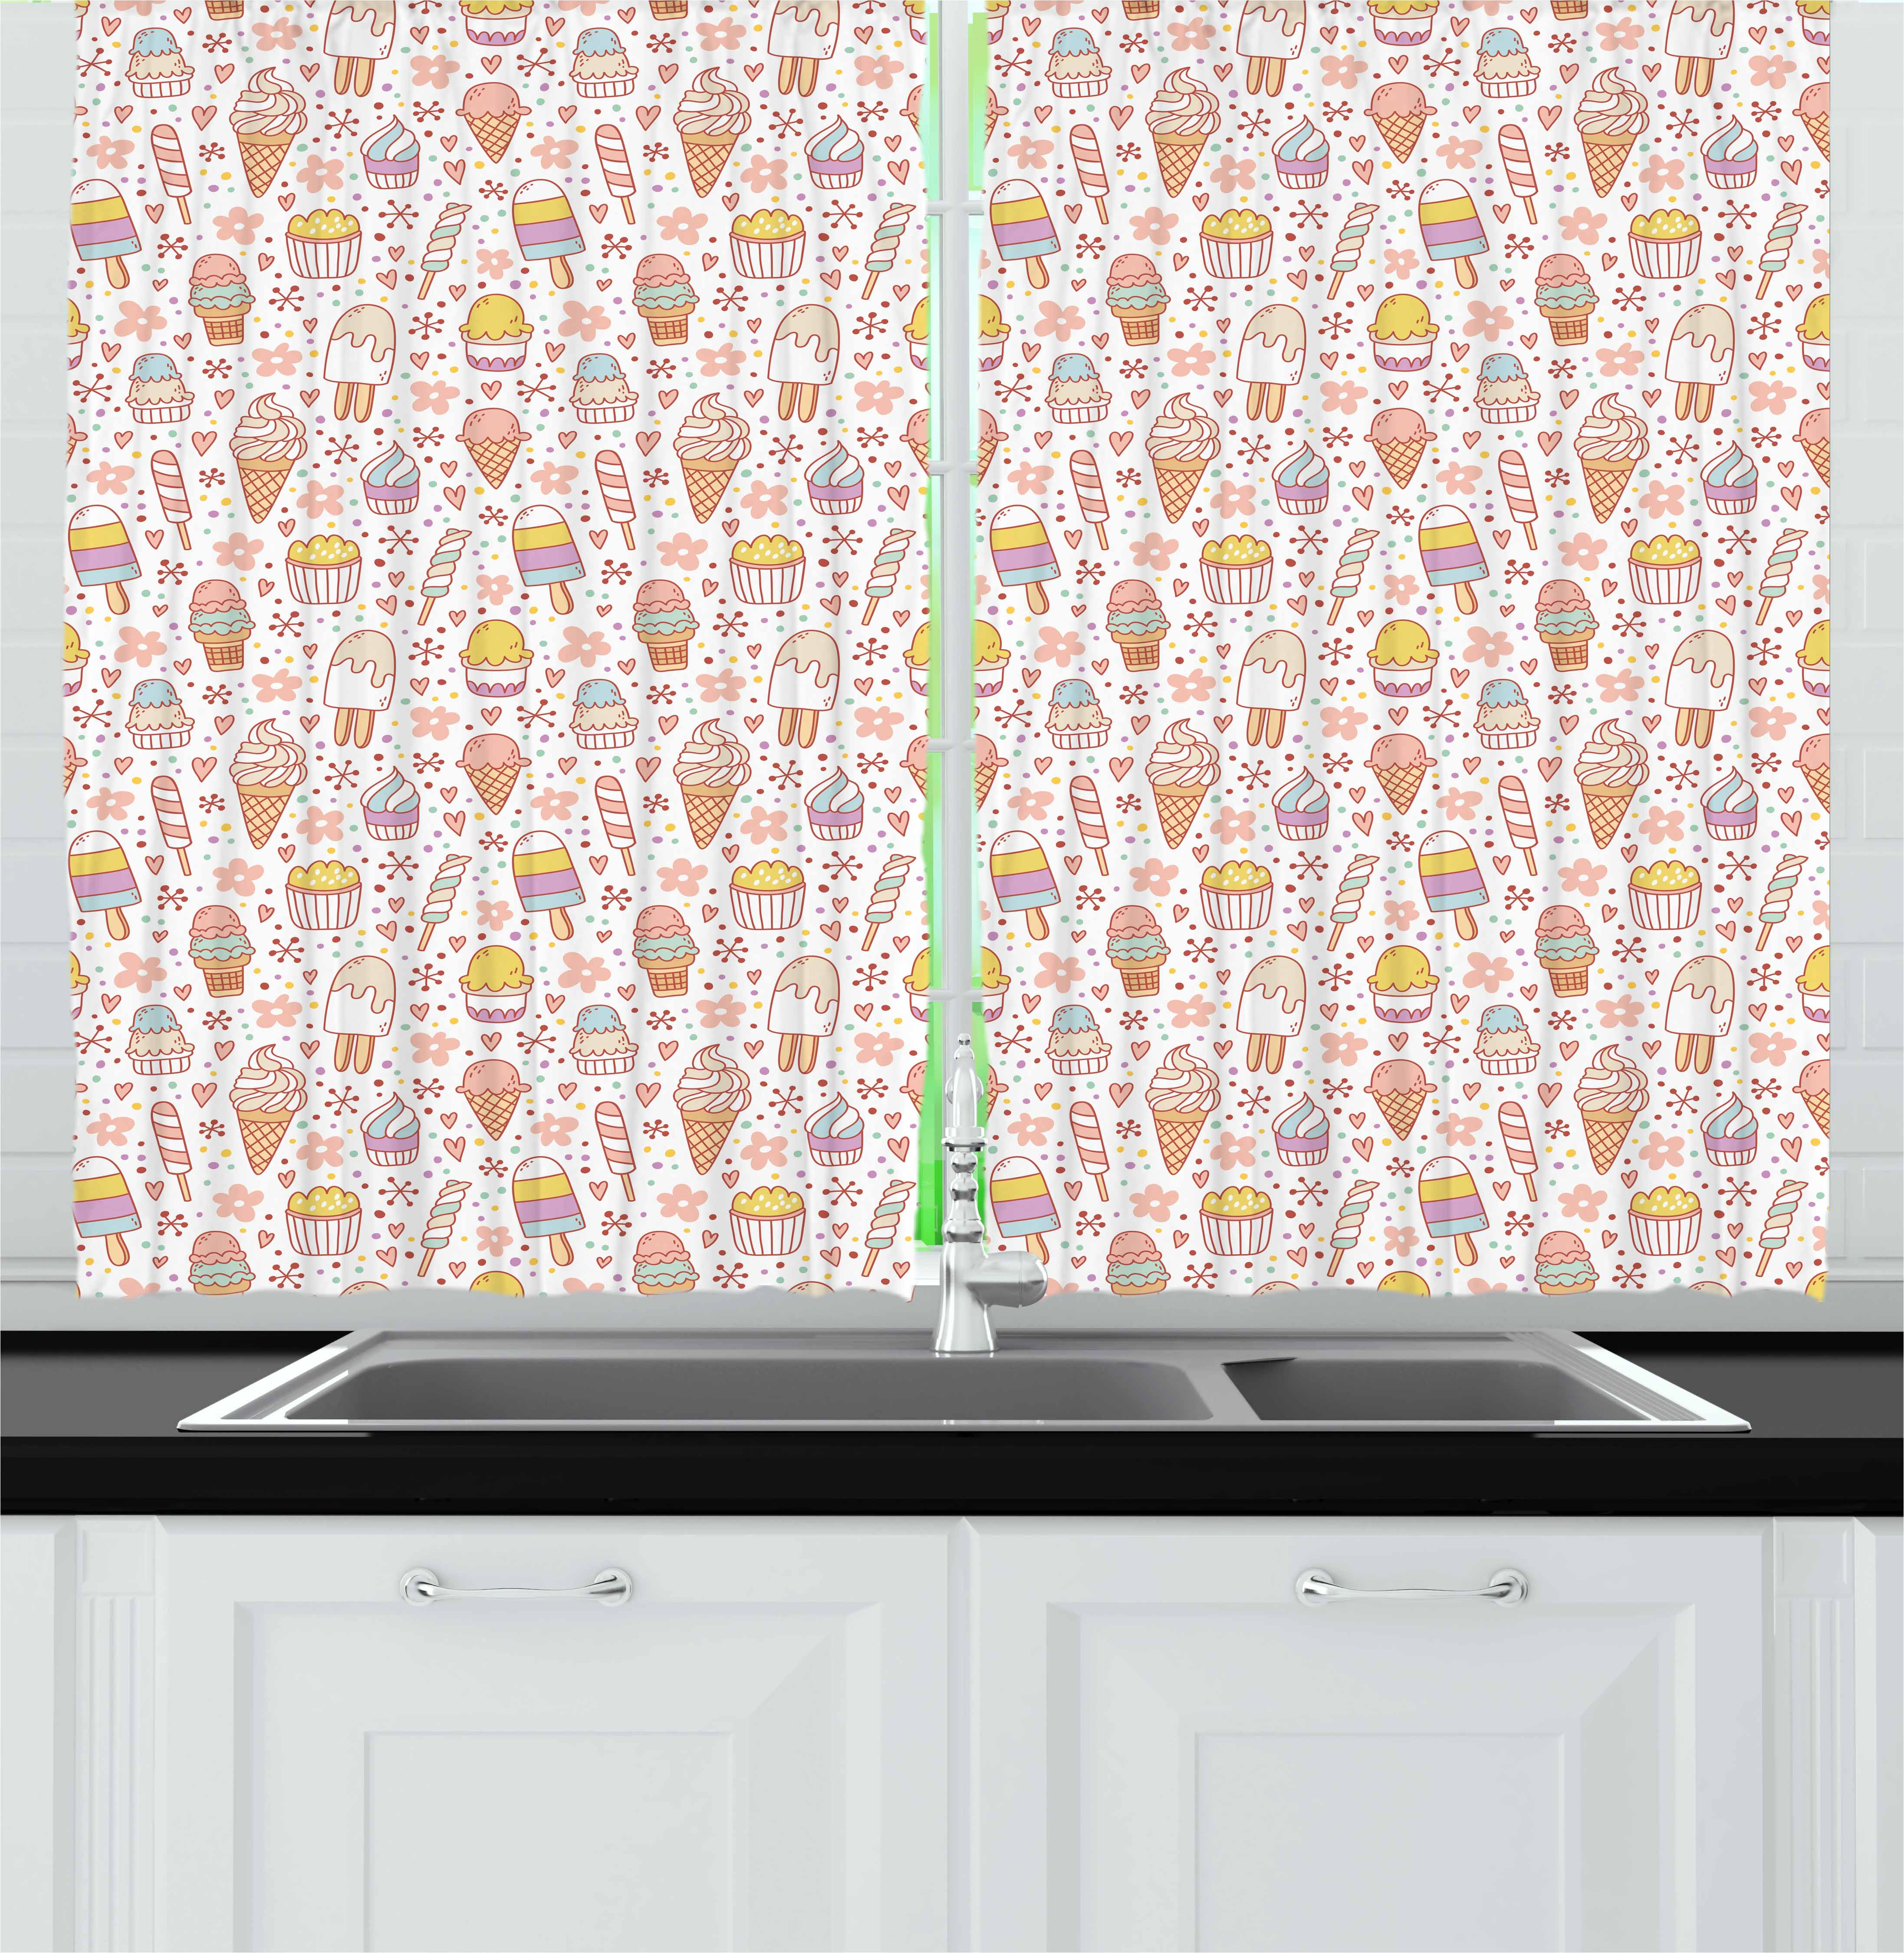 Ice Cream Curtains 2 Panels Set, Cute Candies and Yummy Heart Figures Summer Flower Color Dots Kids Design, Window Drapes for Living Room Bedroom, 55W X 39L Inches, Peach Coral Mint, by Ambesonne